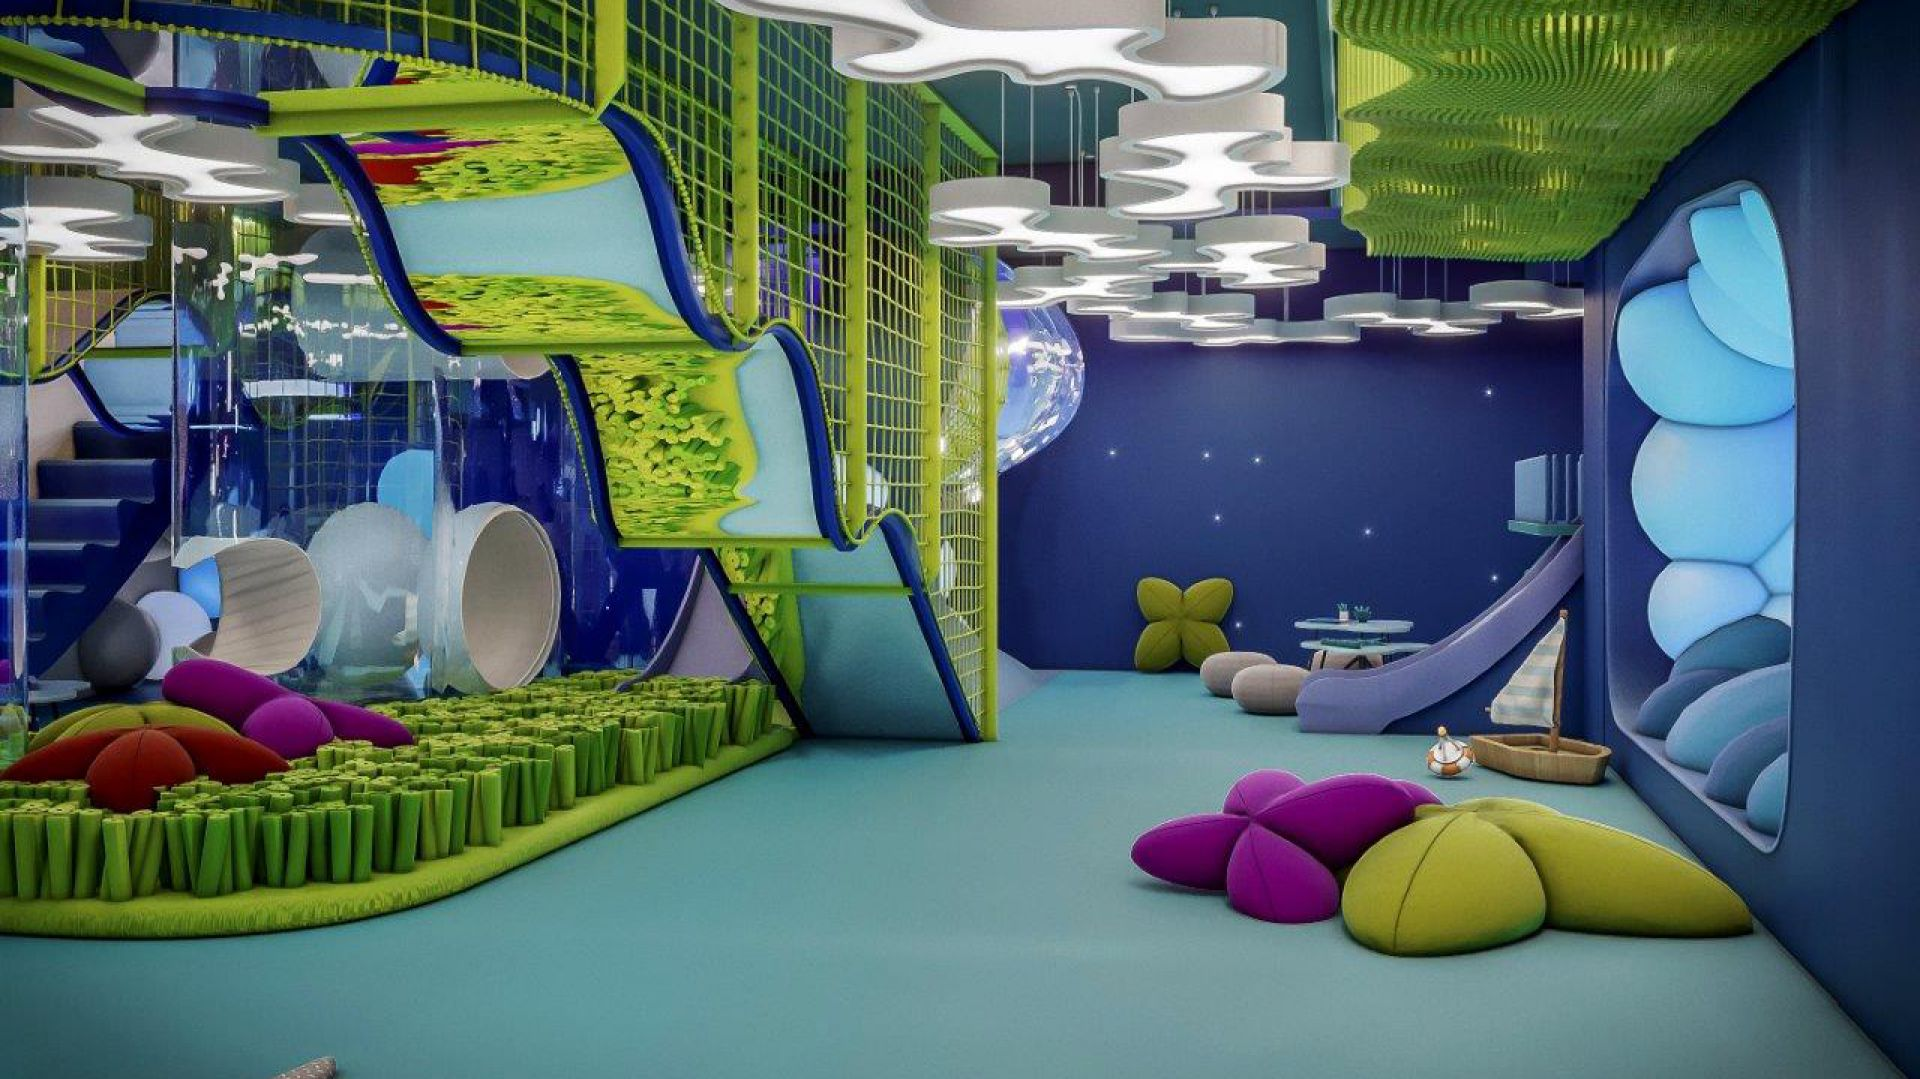 Kids Room w hotelu Gwiazda Pomorza. Fot. Iliard Architecture & Project Management